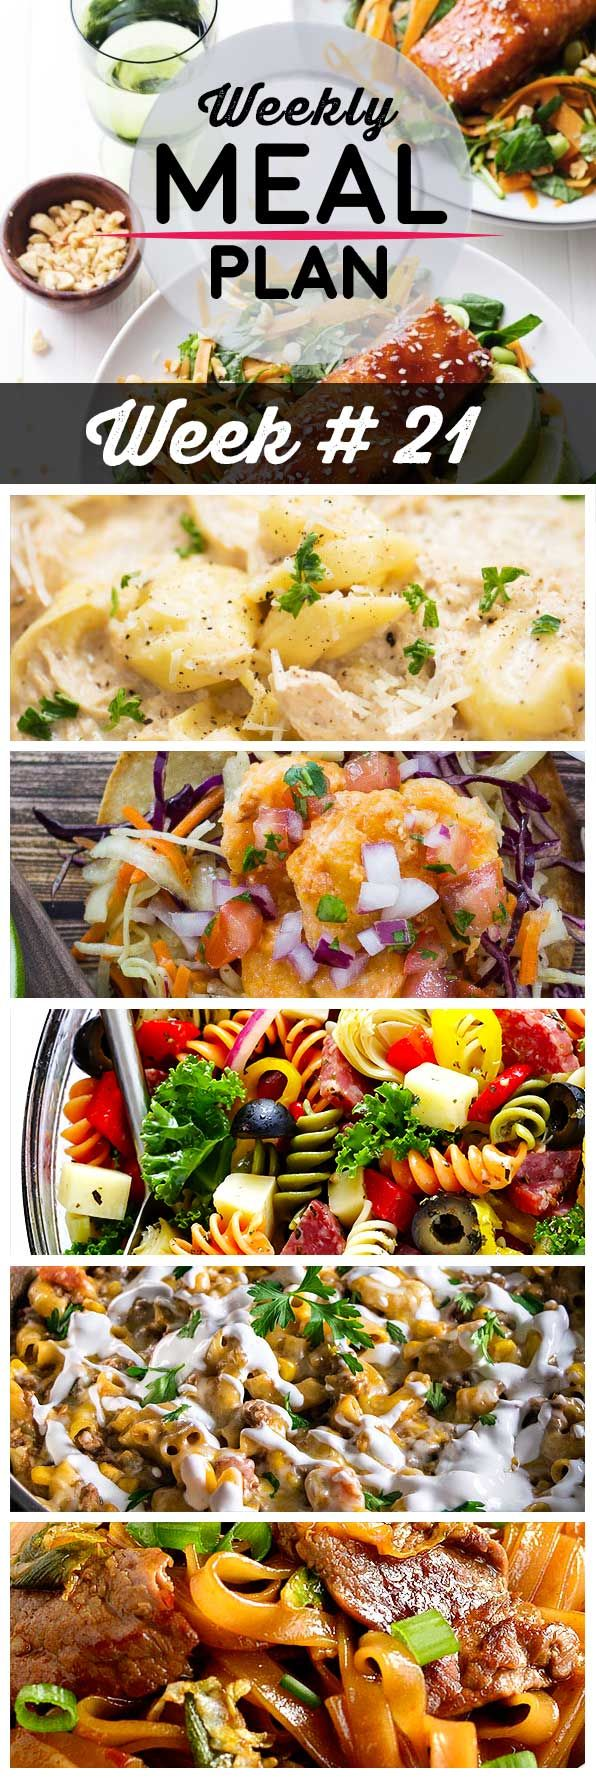 Weekly Meal Plan #21! A meal plan to help you keep things tasty each week, including hoisin glazed salmon, chicken alfredo tortellini, bang bang shrimp tacos, and more!   HomemadeHooplah.com